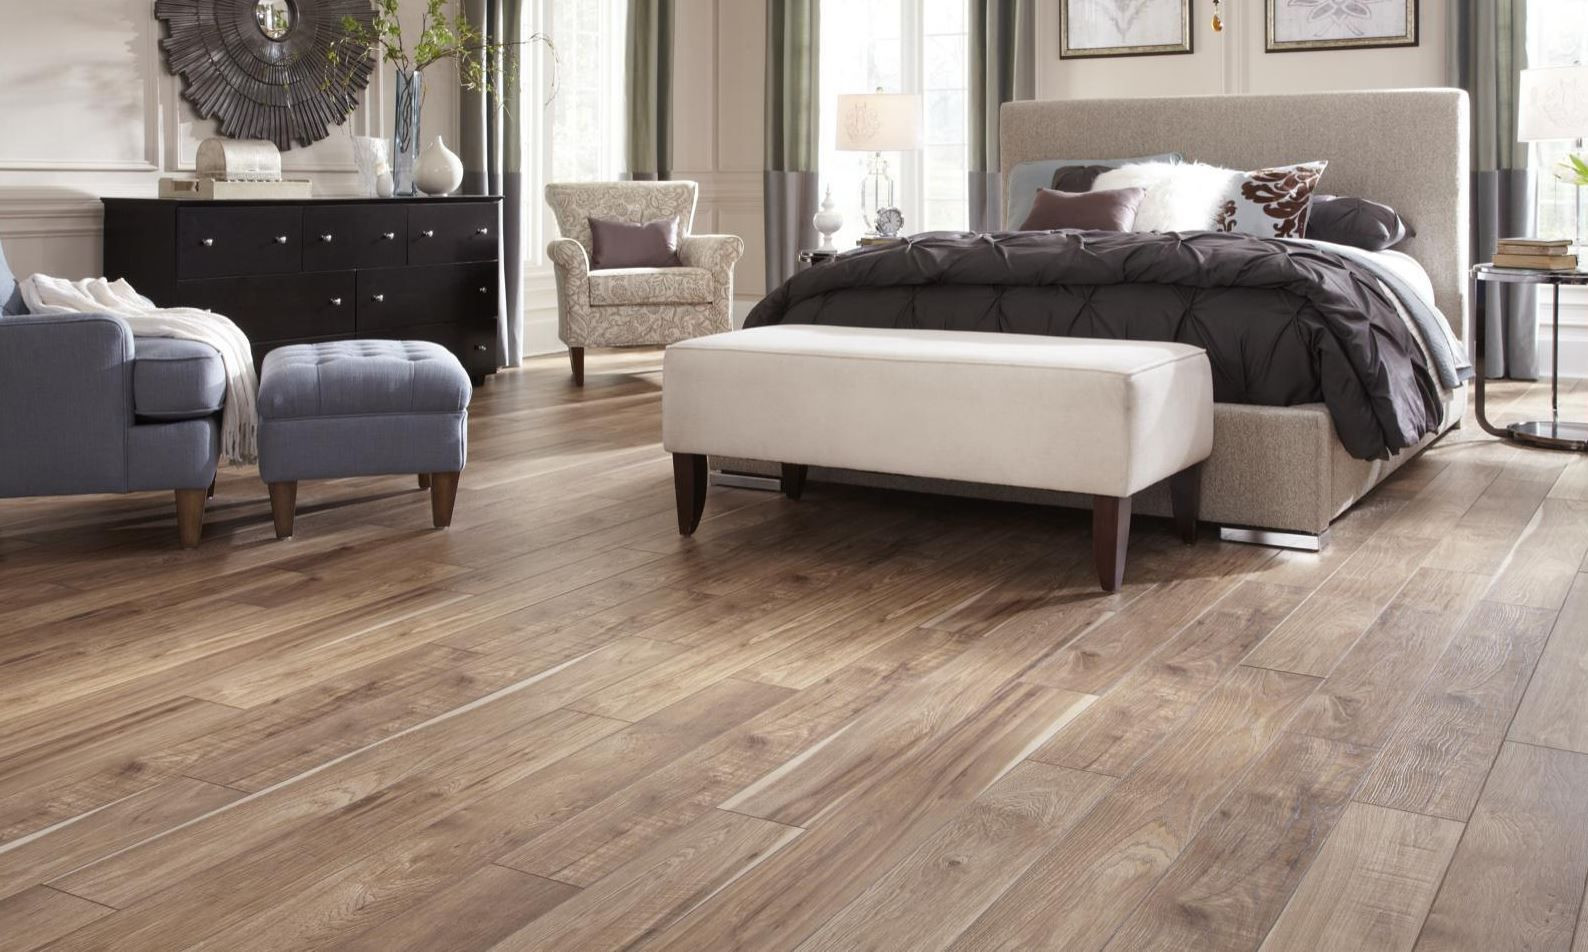 vinyl plank flooring that looks like hardwood of luxury vinyl plank flooring that looks like wood within mannington adura luxury vinyl plank flooring 57aa7d065f9b58974a2be49e jpg